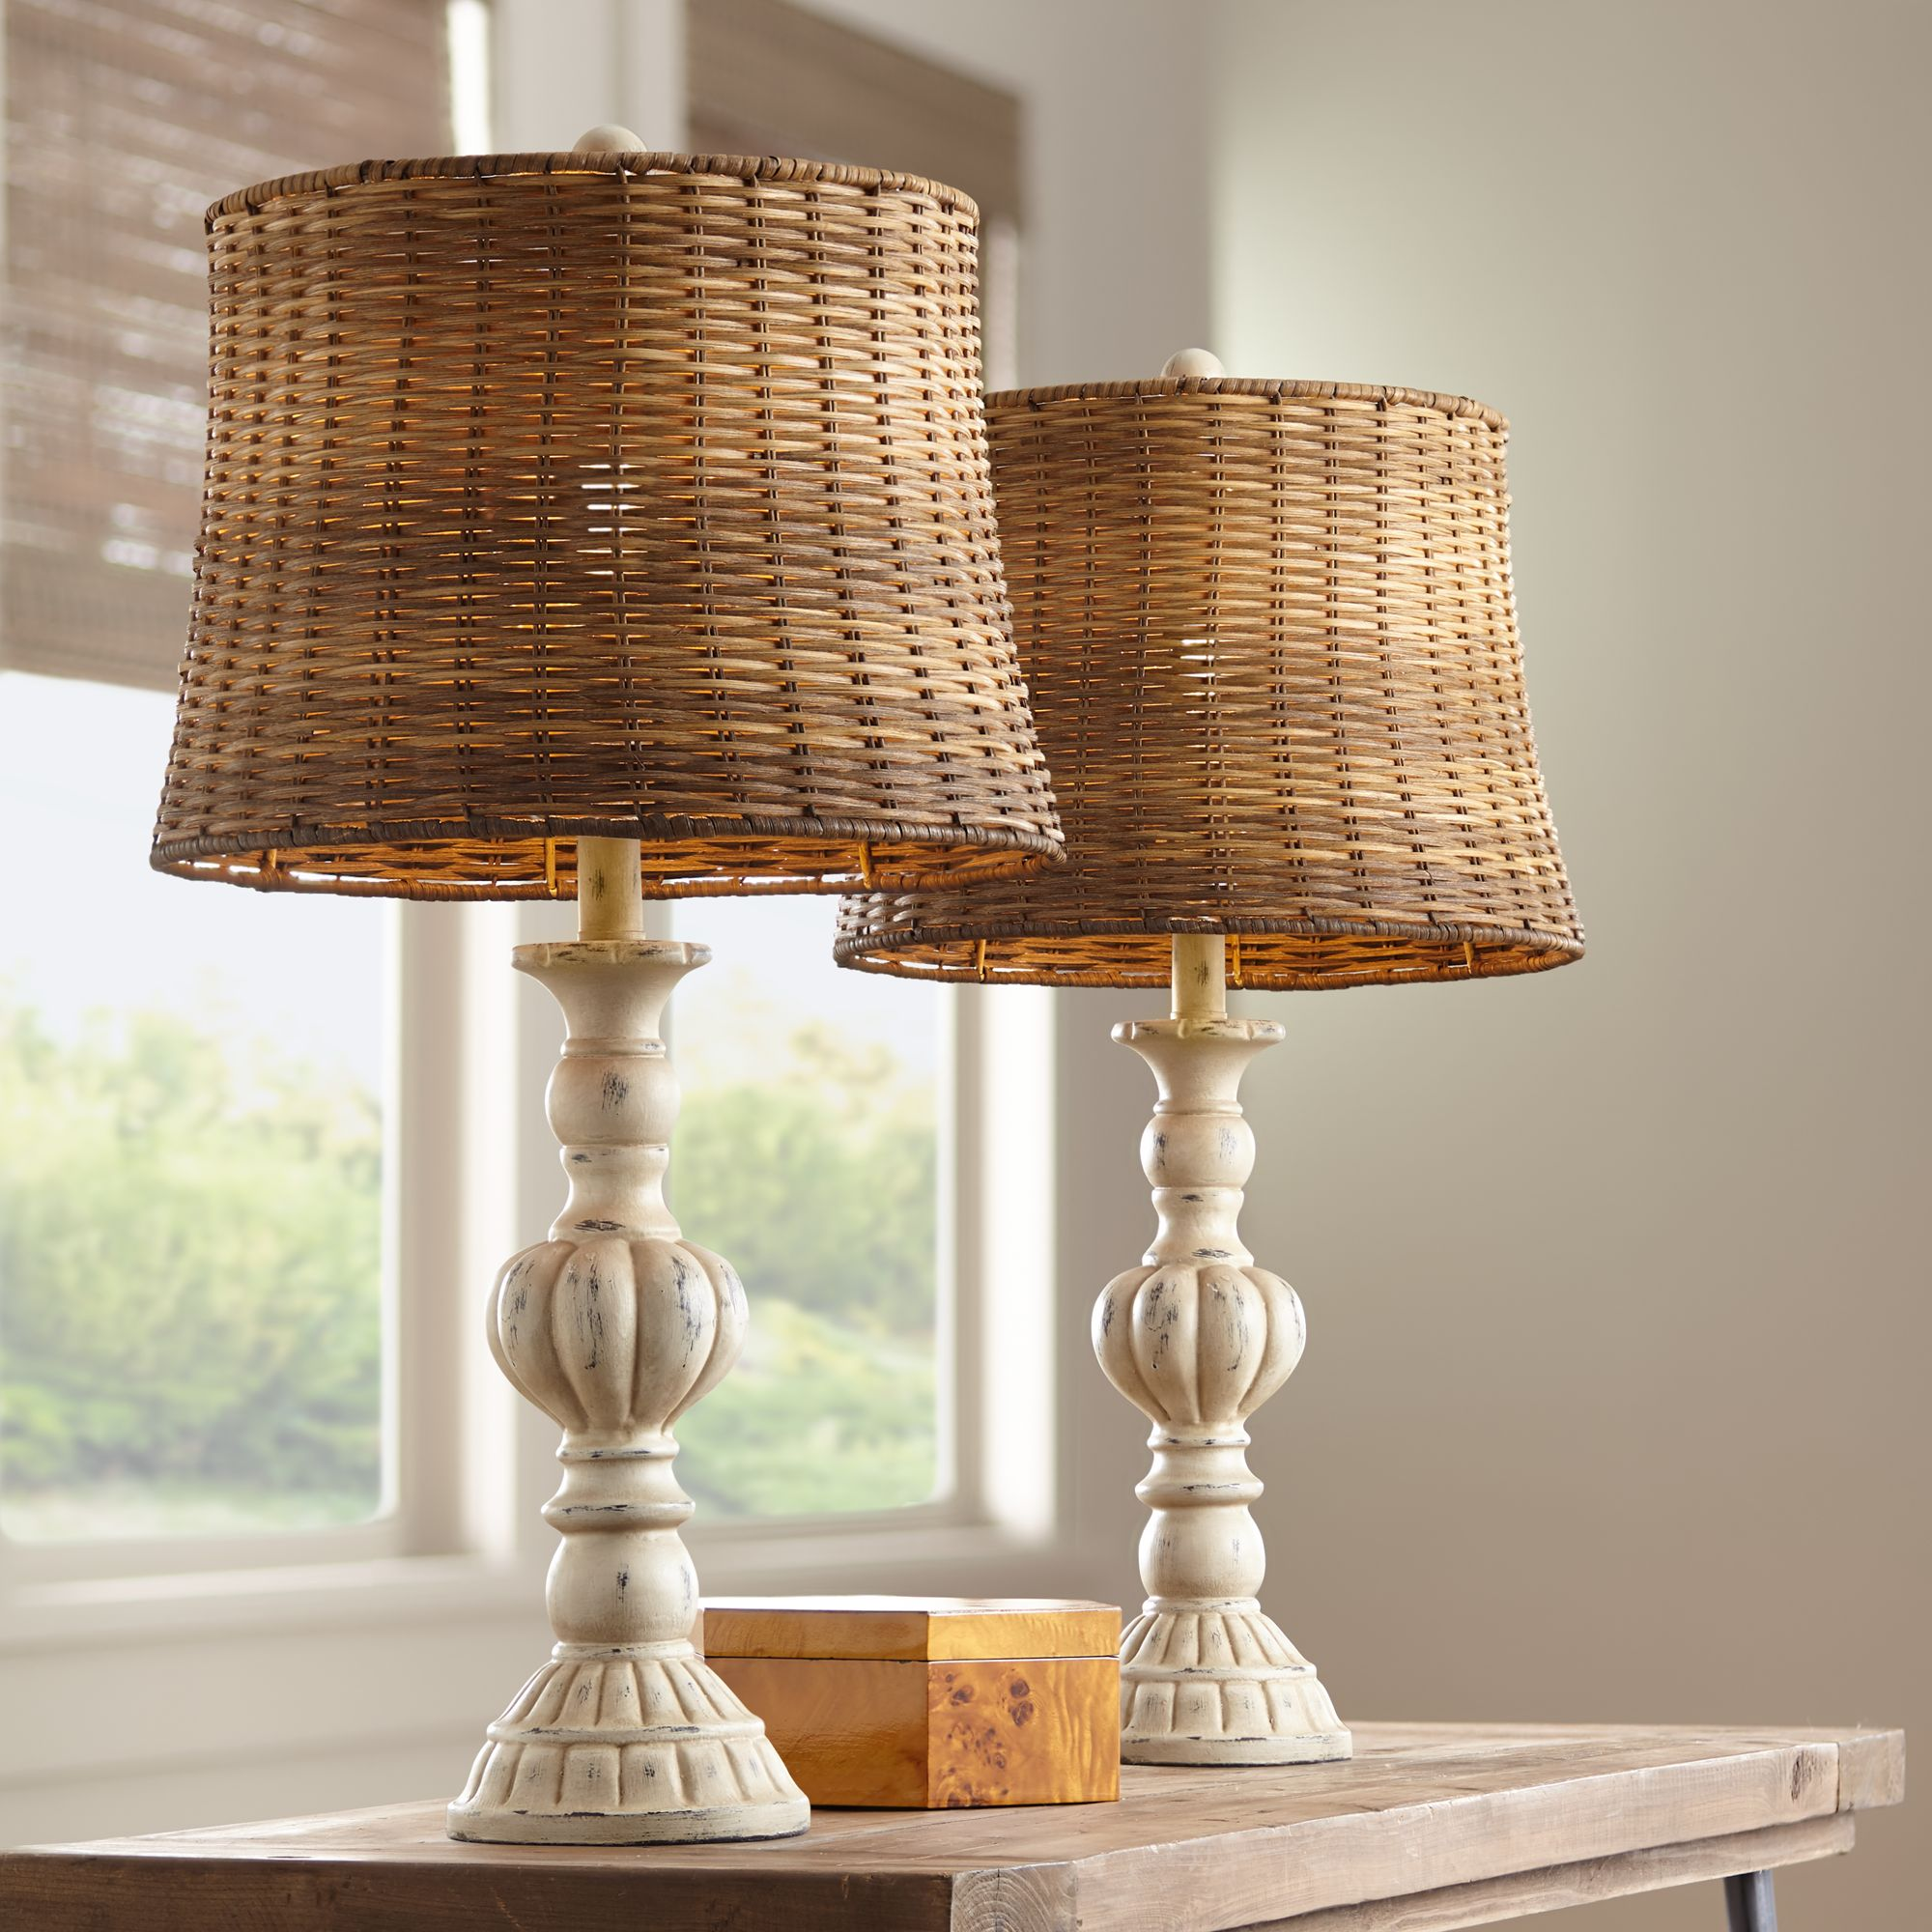 John Timberland Country Cottage Table Lamps Set of 12 Antique White  Candlestick Rattan Tapered Drum Shade for Living Room Bedroom   Walmart.com